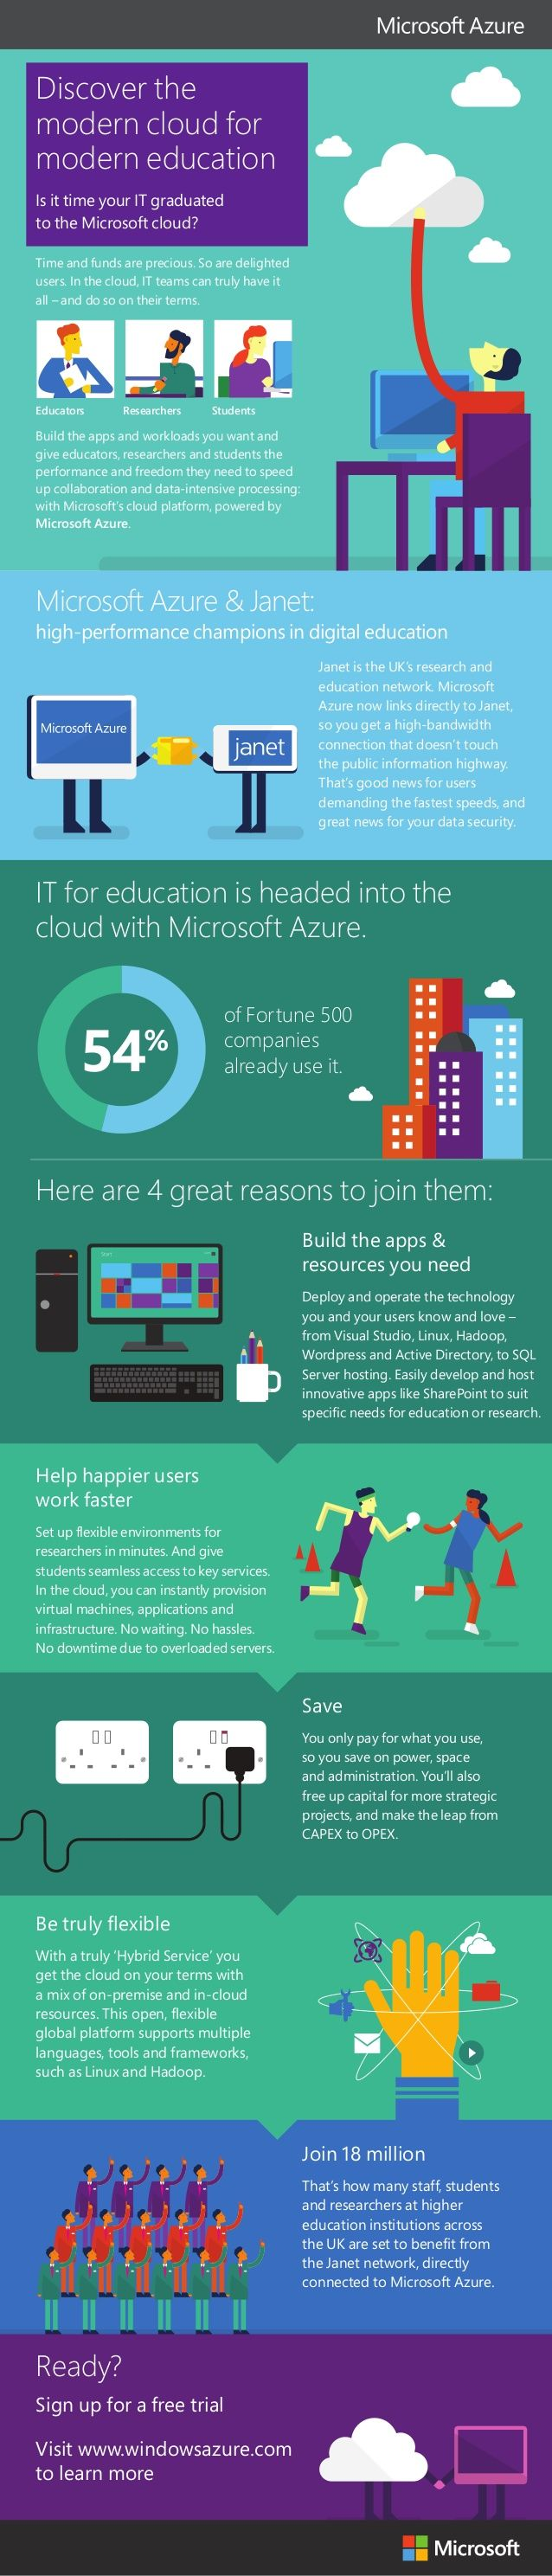 Discover the modern cloud for modern education #infographic